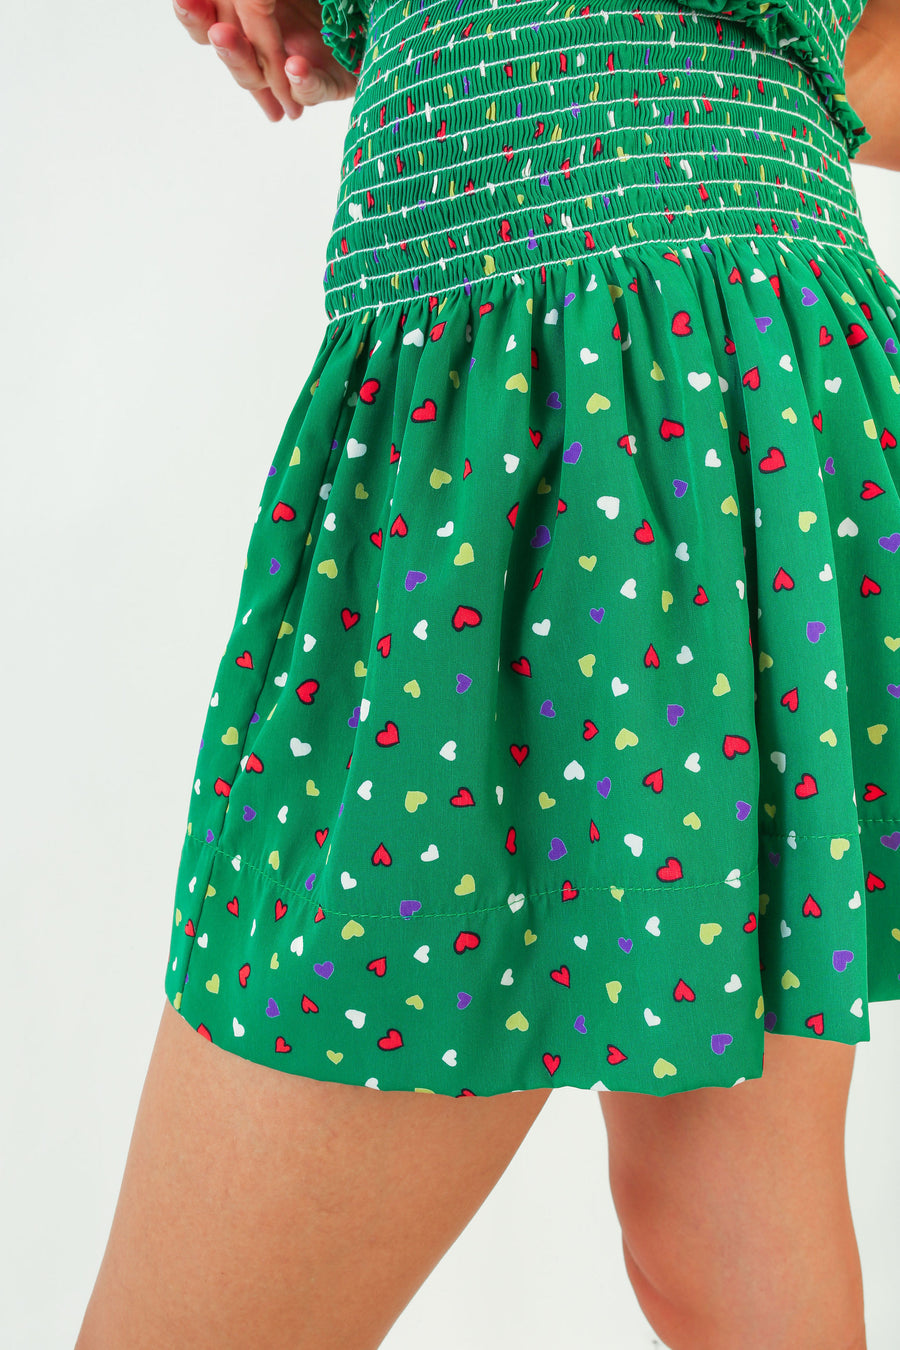 ERICA SKIRT GREEN HEARTS *LIMITED*EDITION*